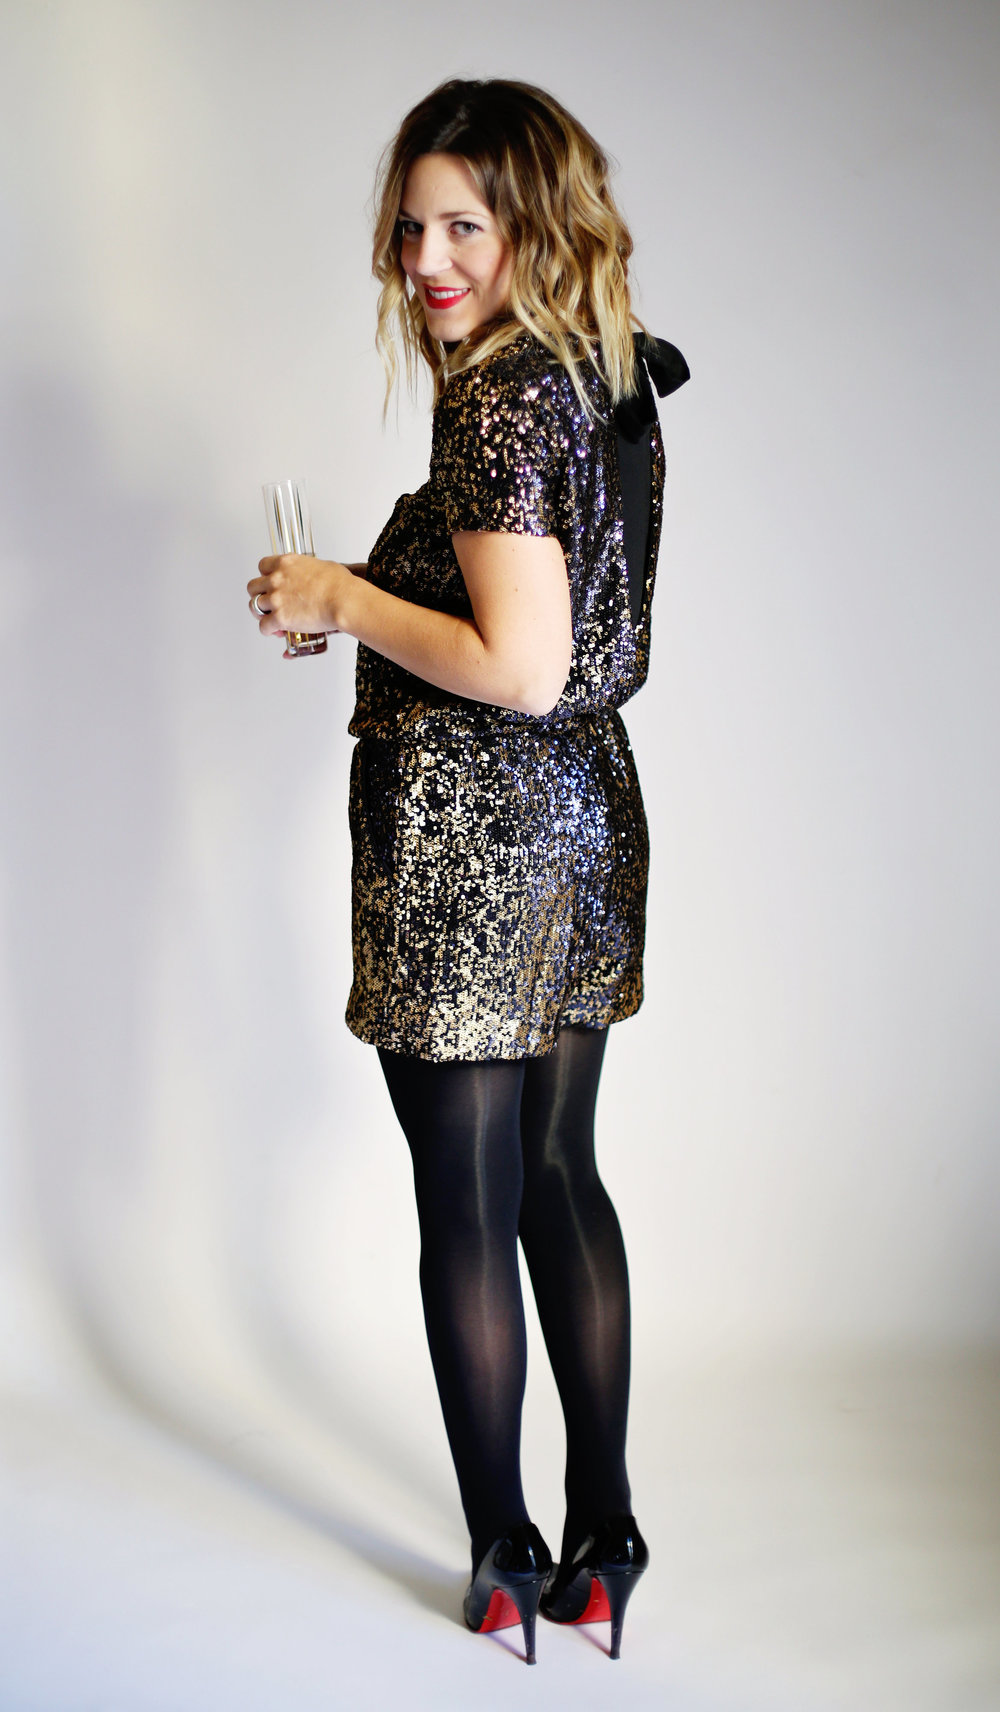 shoshanna sequin romper with christian louboutin heels and red lipstick .jpg